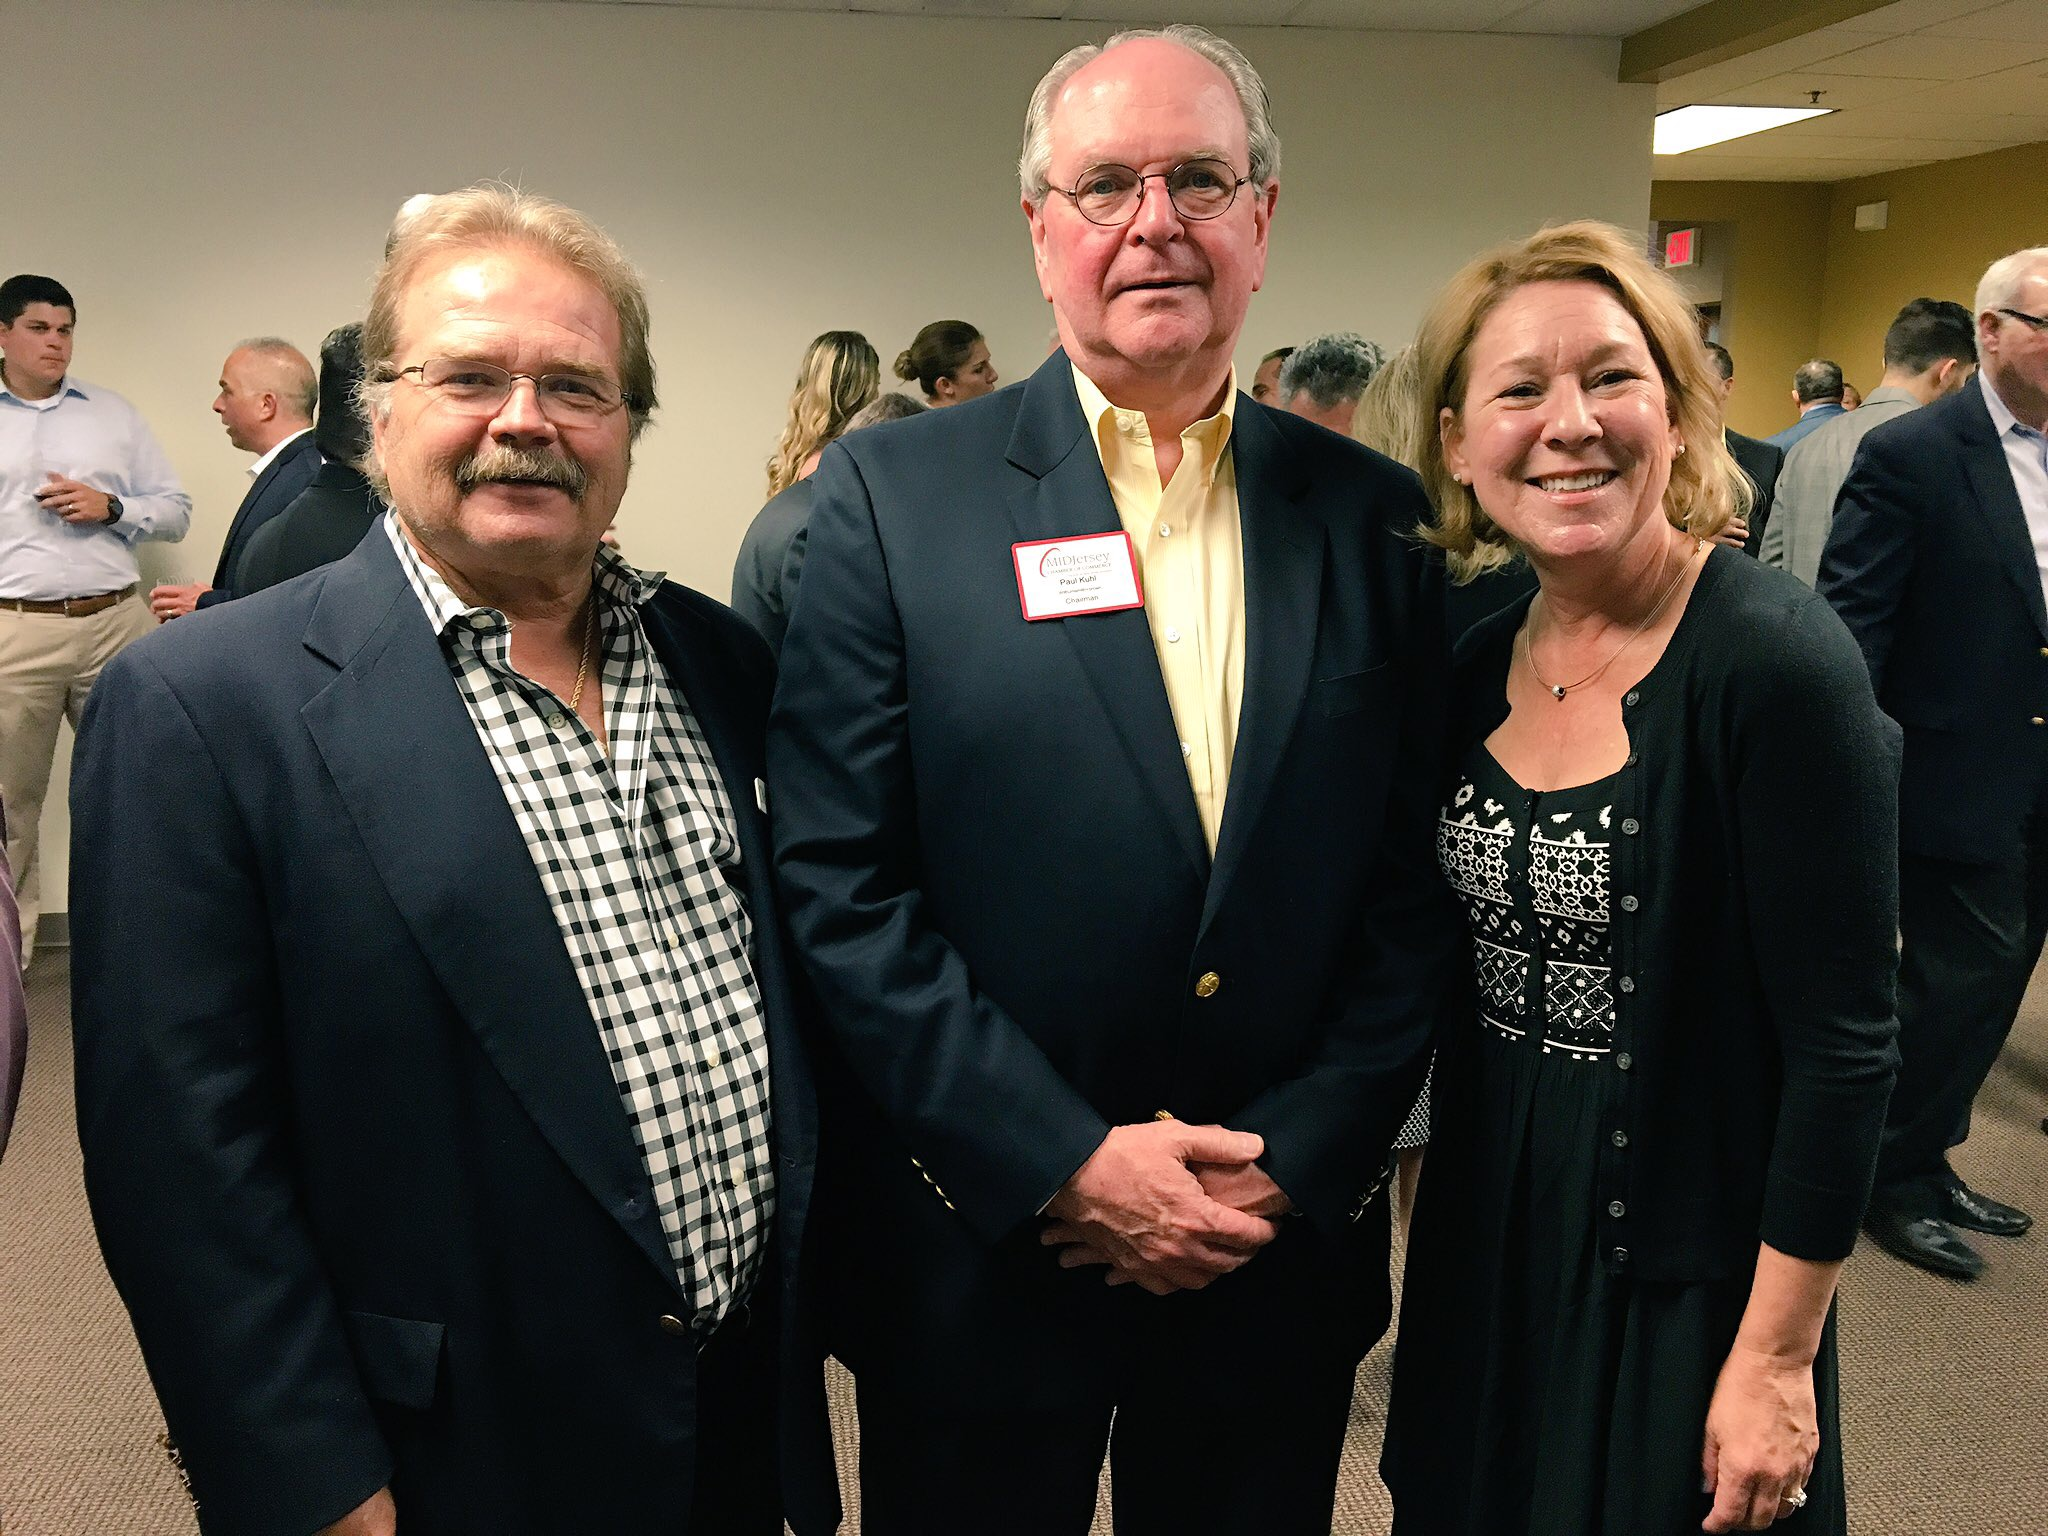 Jeffrey Barnhart, CEO and president of CMA, Paul Kuhl, chair of the MIDJersey Chamber of Commerce and senior manager at withum and Linda Kelly, business development at MIDJersey Chamber are pictured at a wine tasting to benefit Trenton Digital Initiative at Ancero in Mount Laurel.